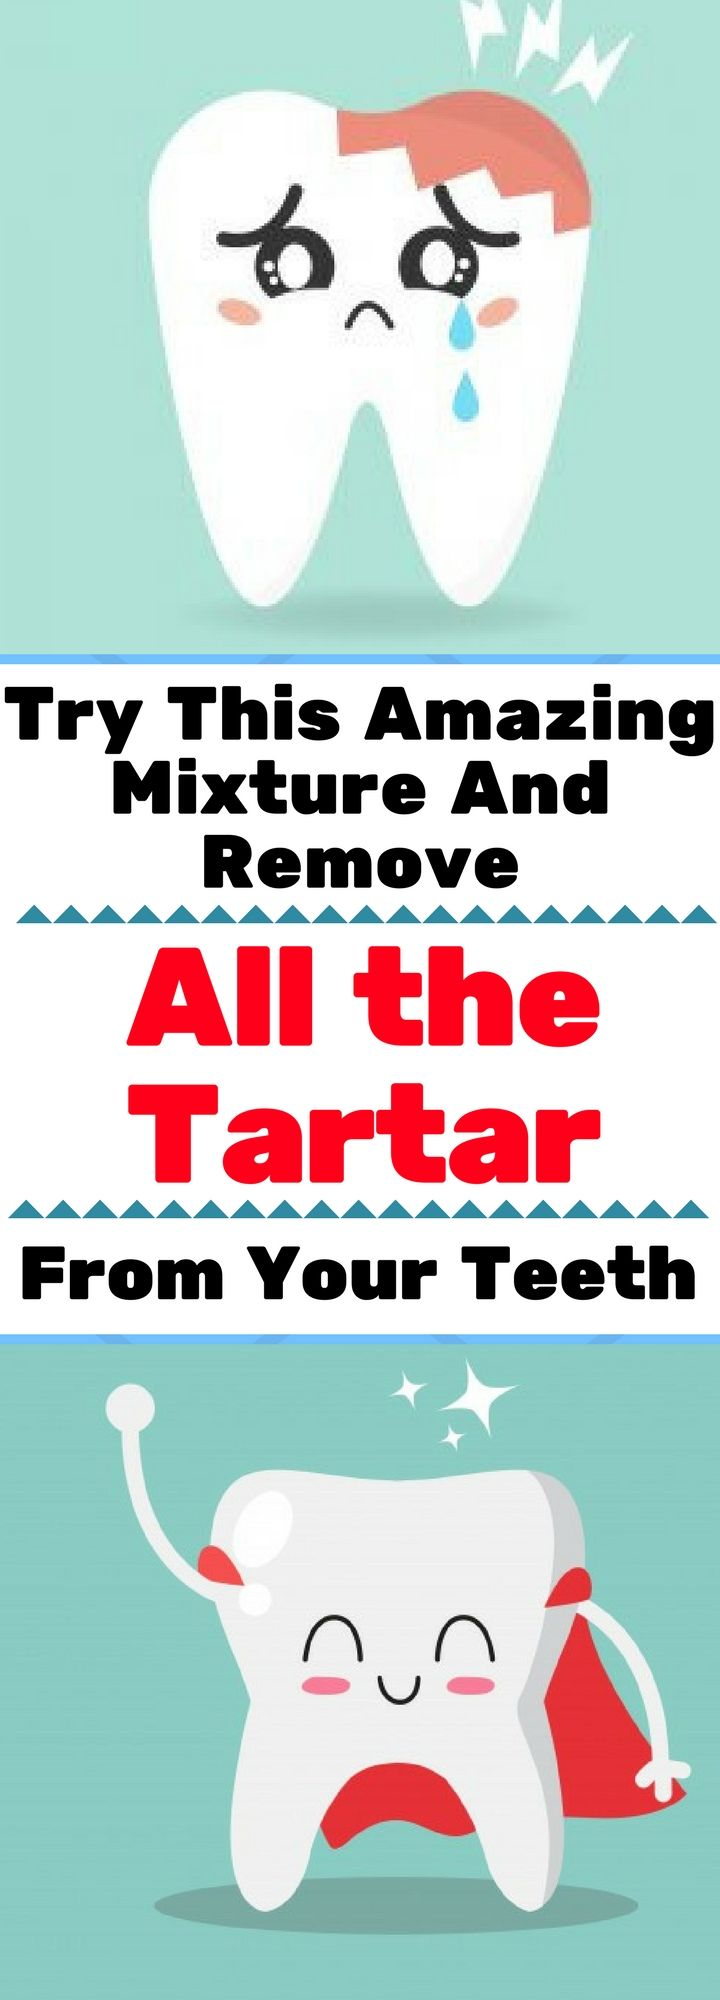 Try This Amazing Mixture And Remove All the Tartar From Your Teeth ! Read This!!!